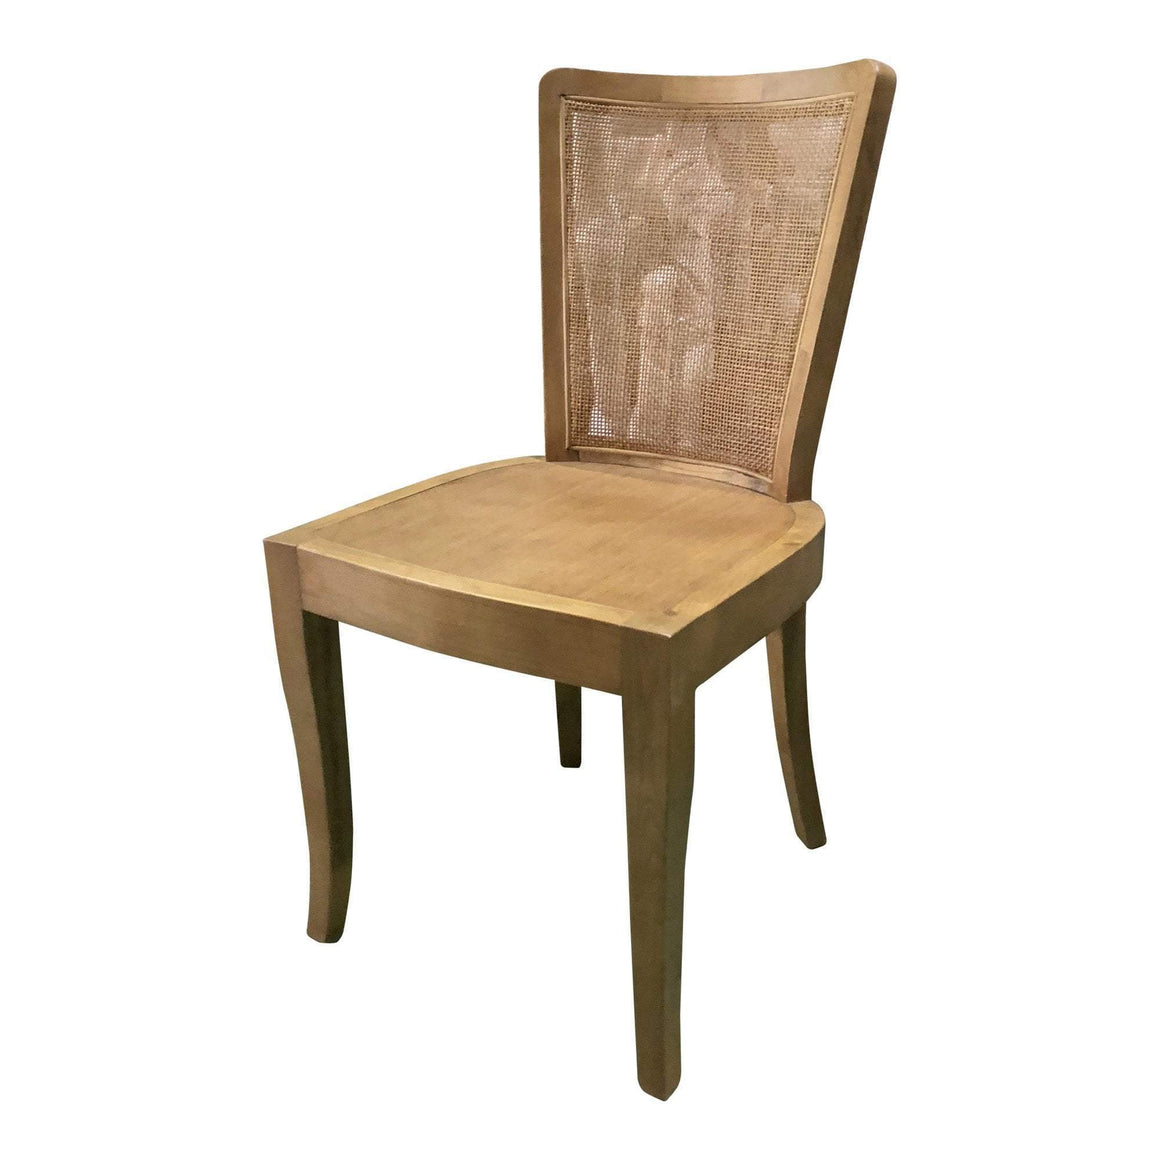 CURVED RATTAN BACK DINING CHAIR